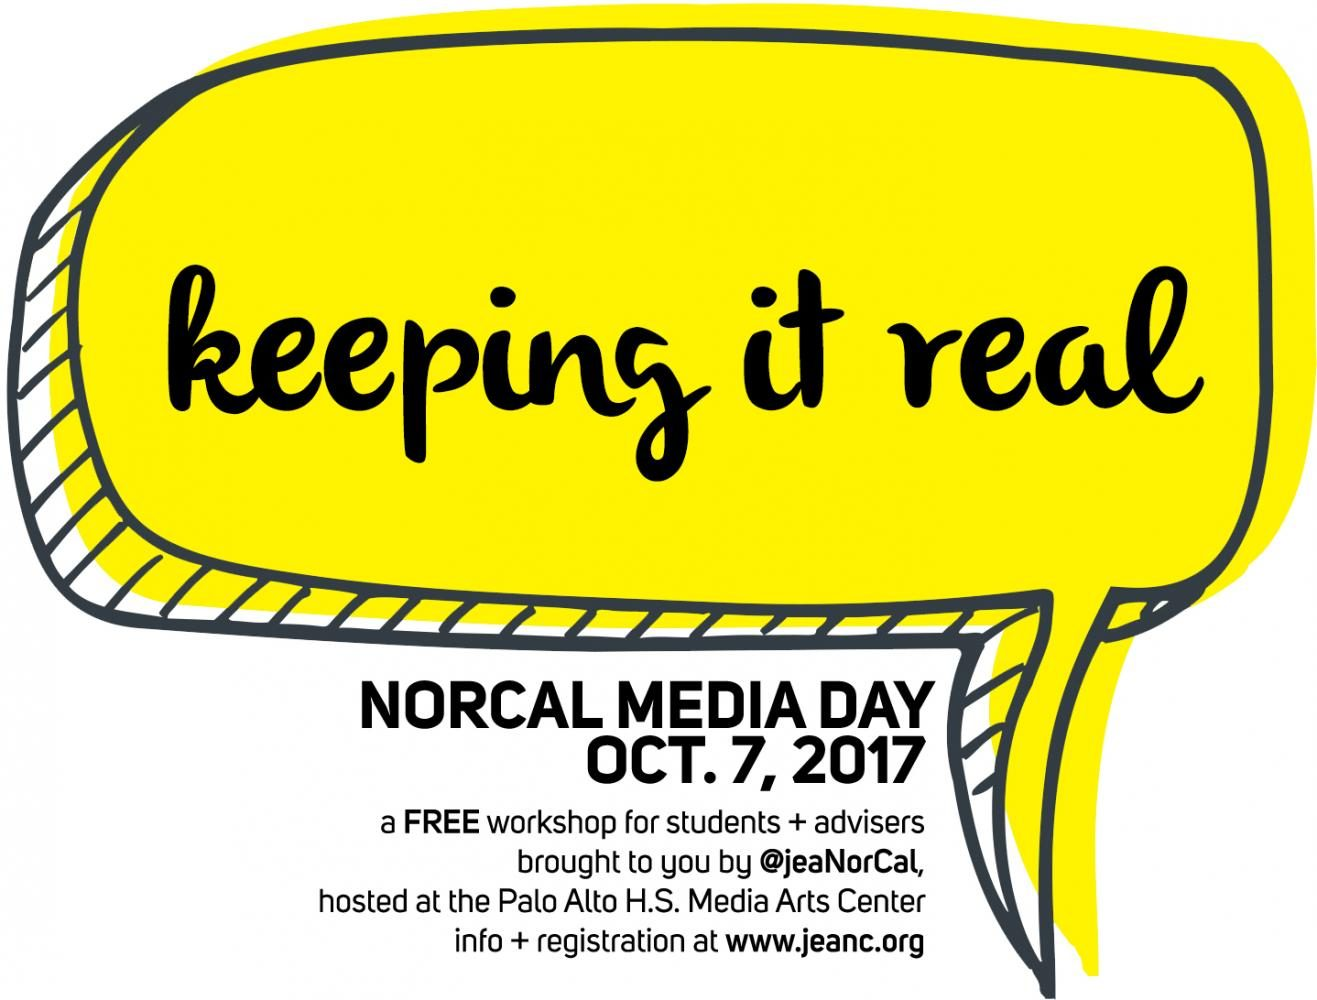 2017+NorCal+Media+Day+will+be+Oct.+7